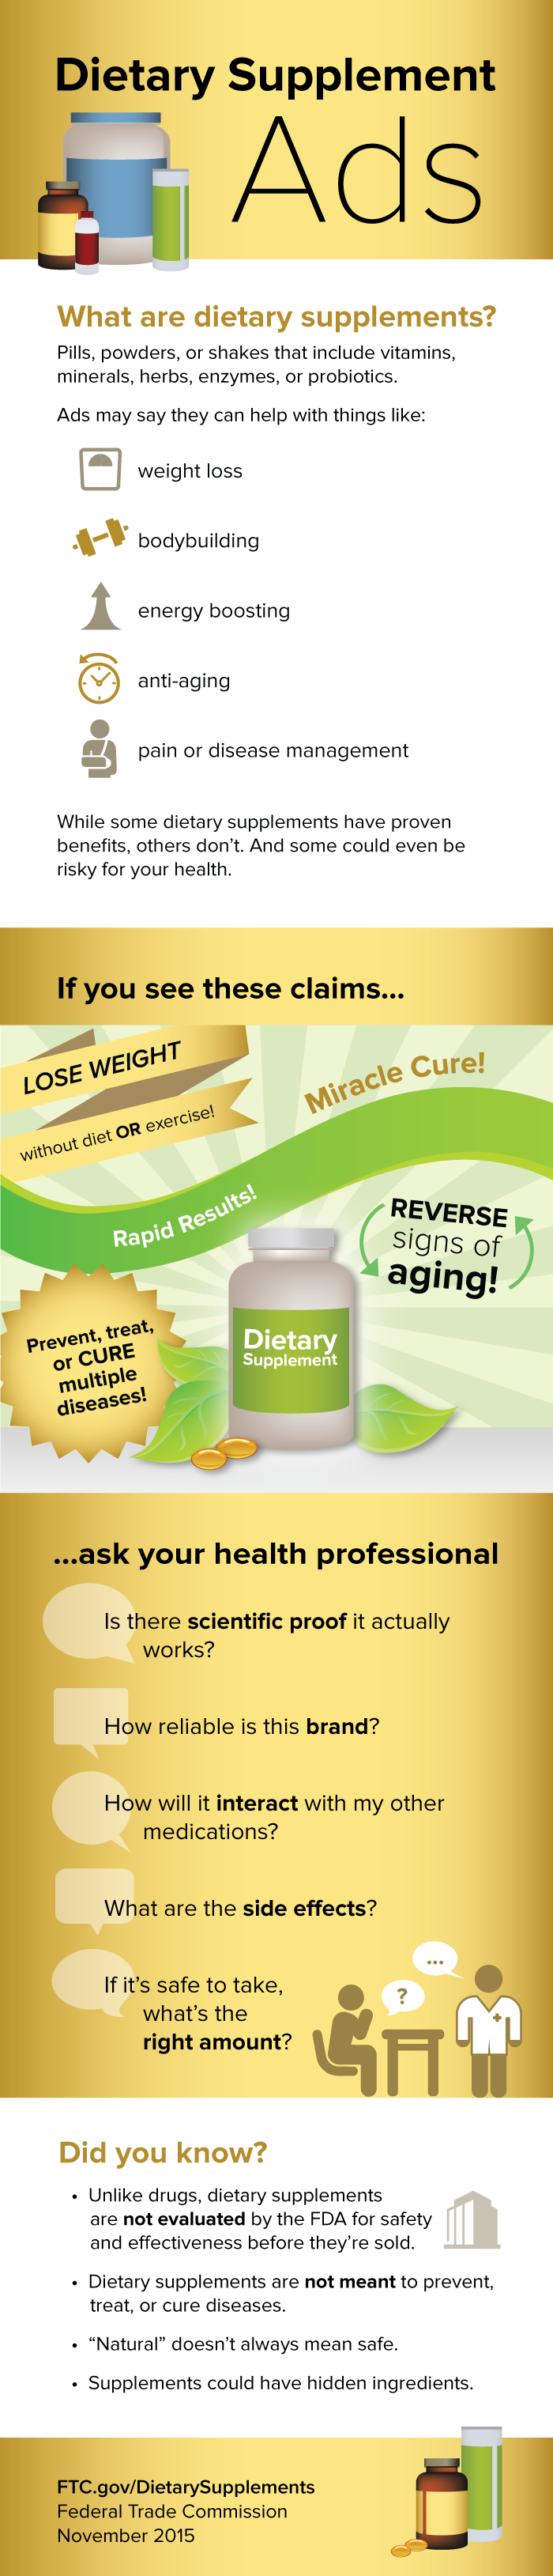 dietary supplements | consumer information